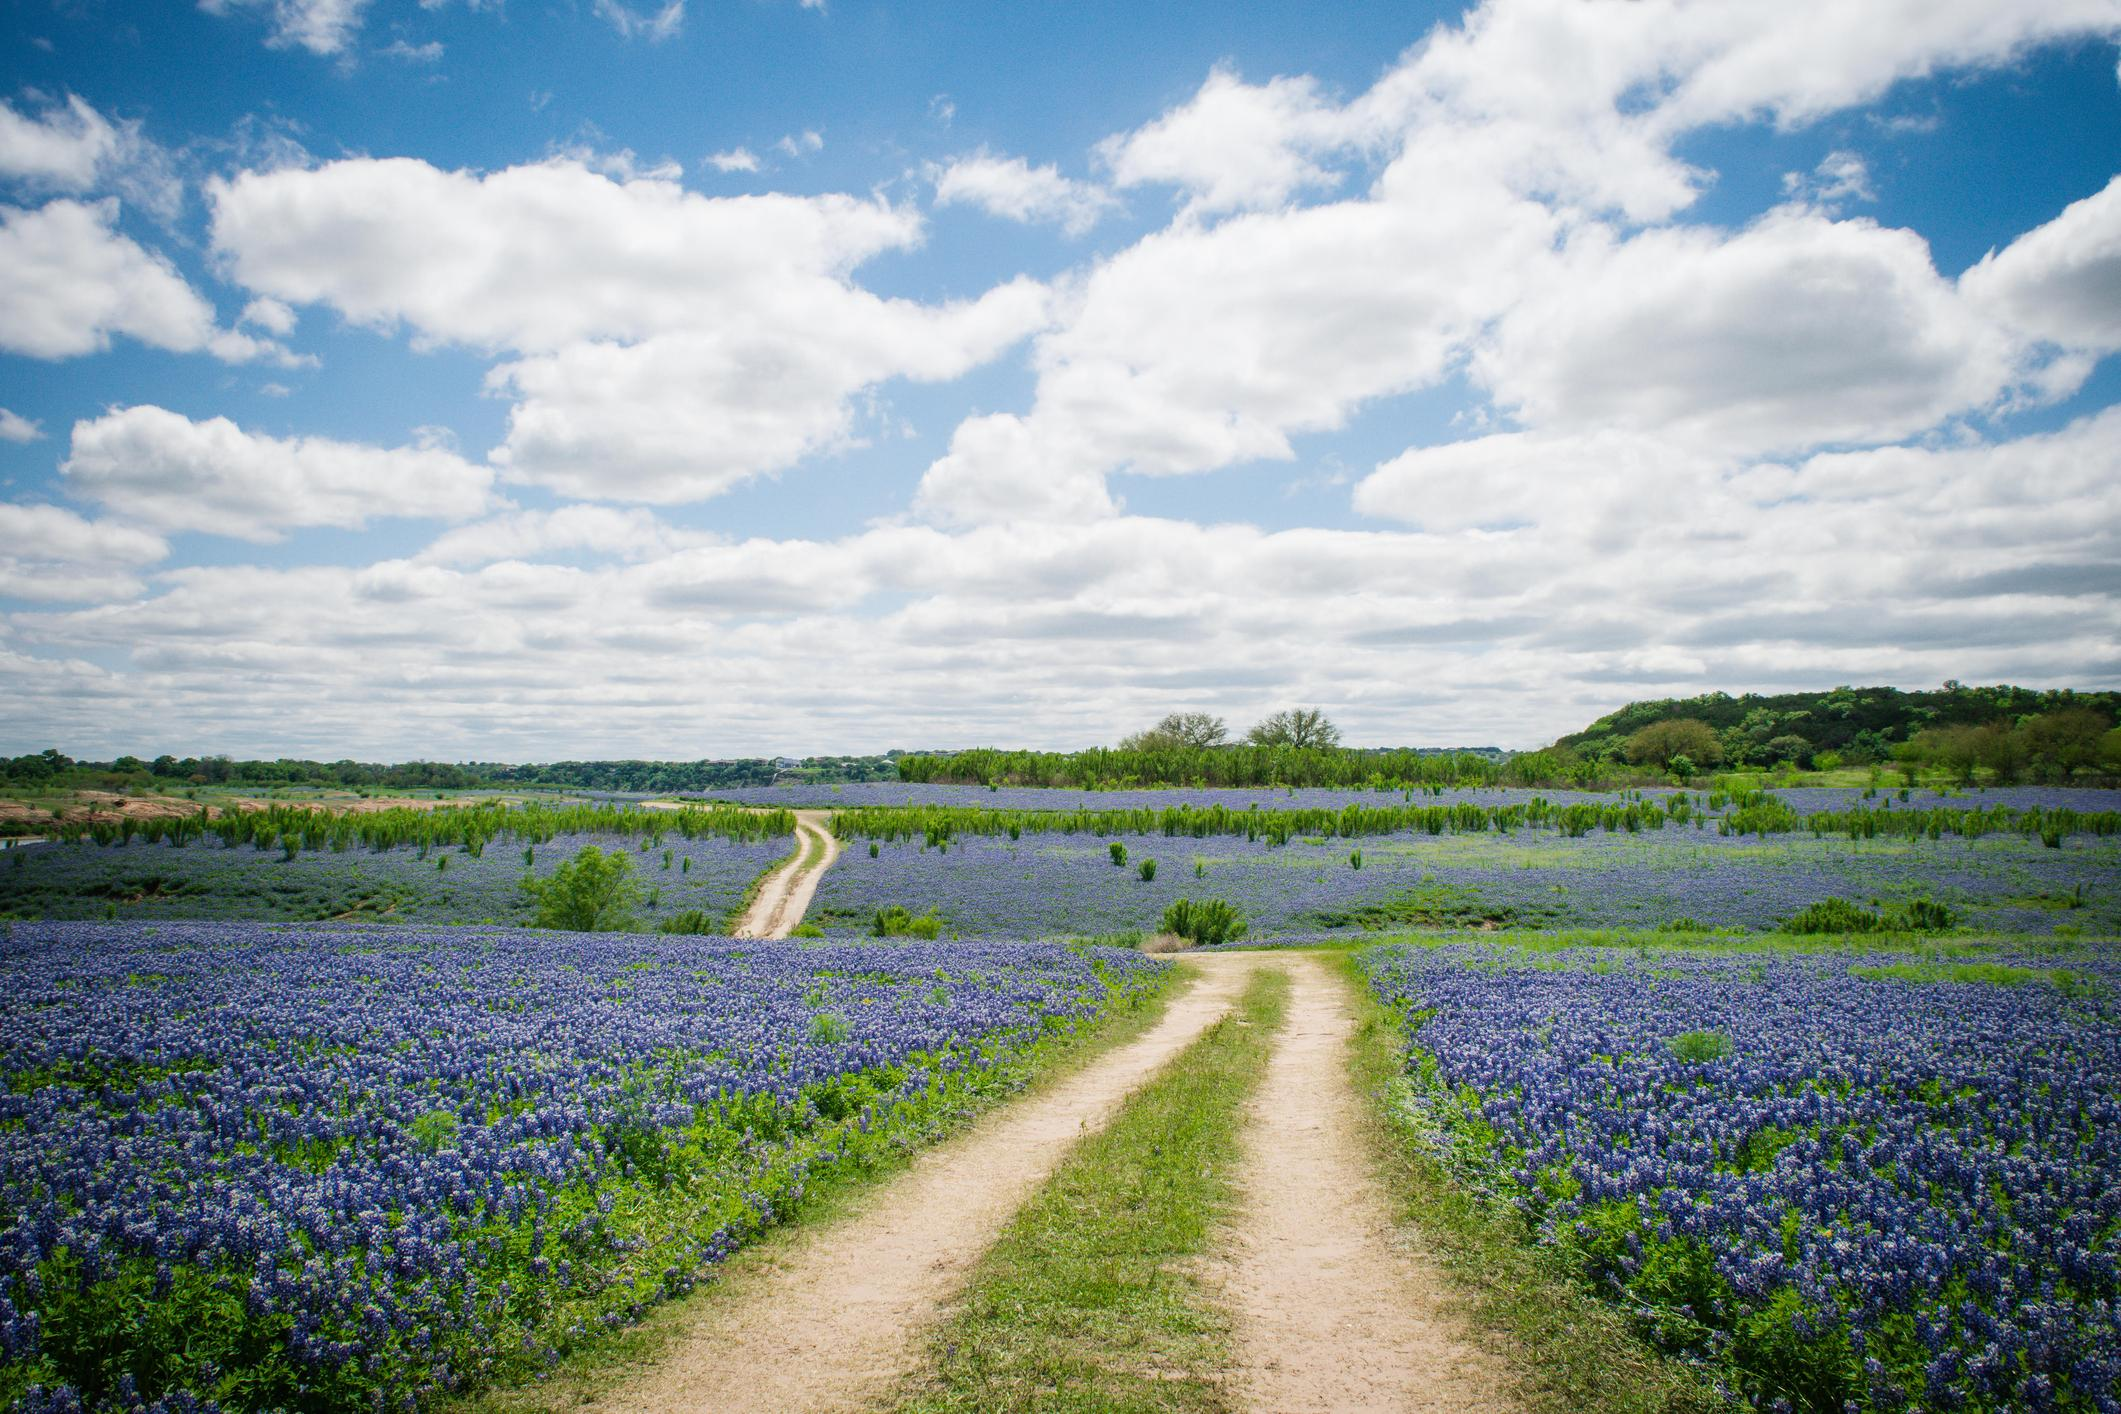 Take in the scenic views of Texas Hill Country.